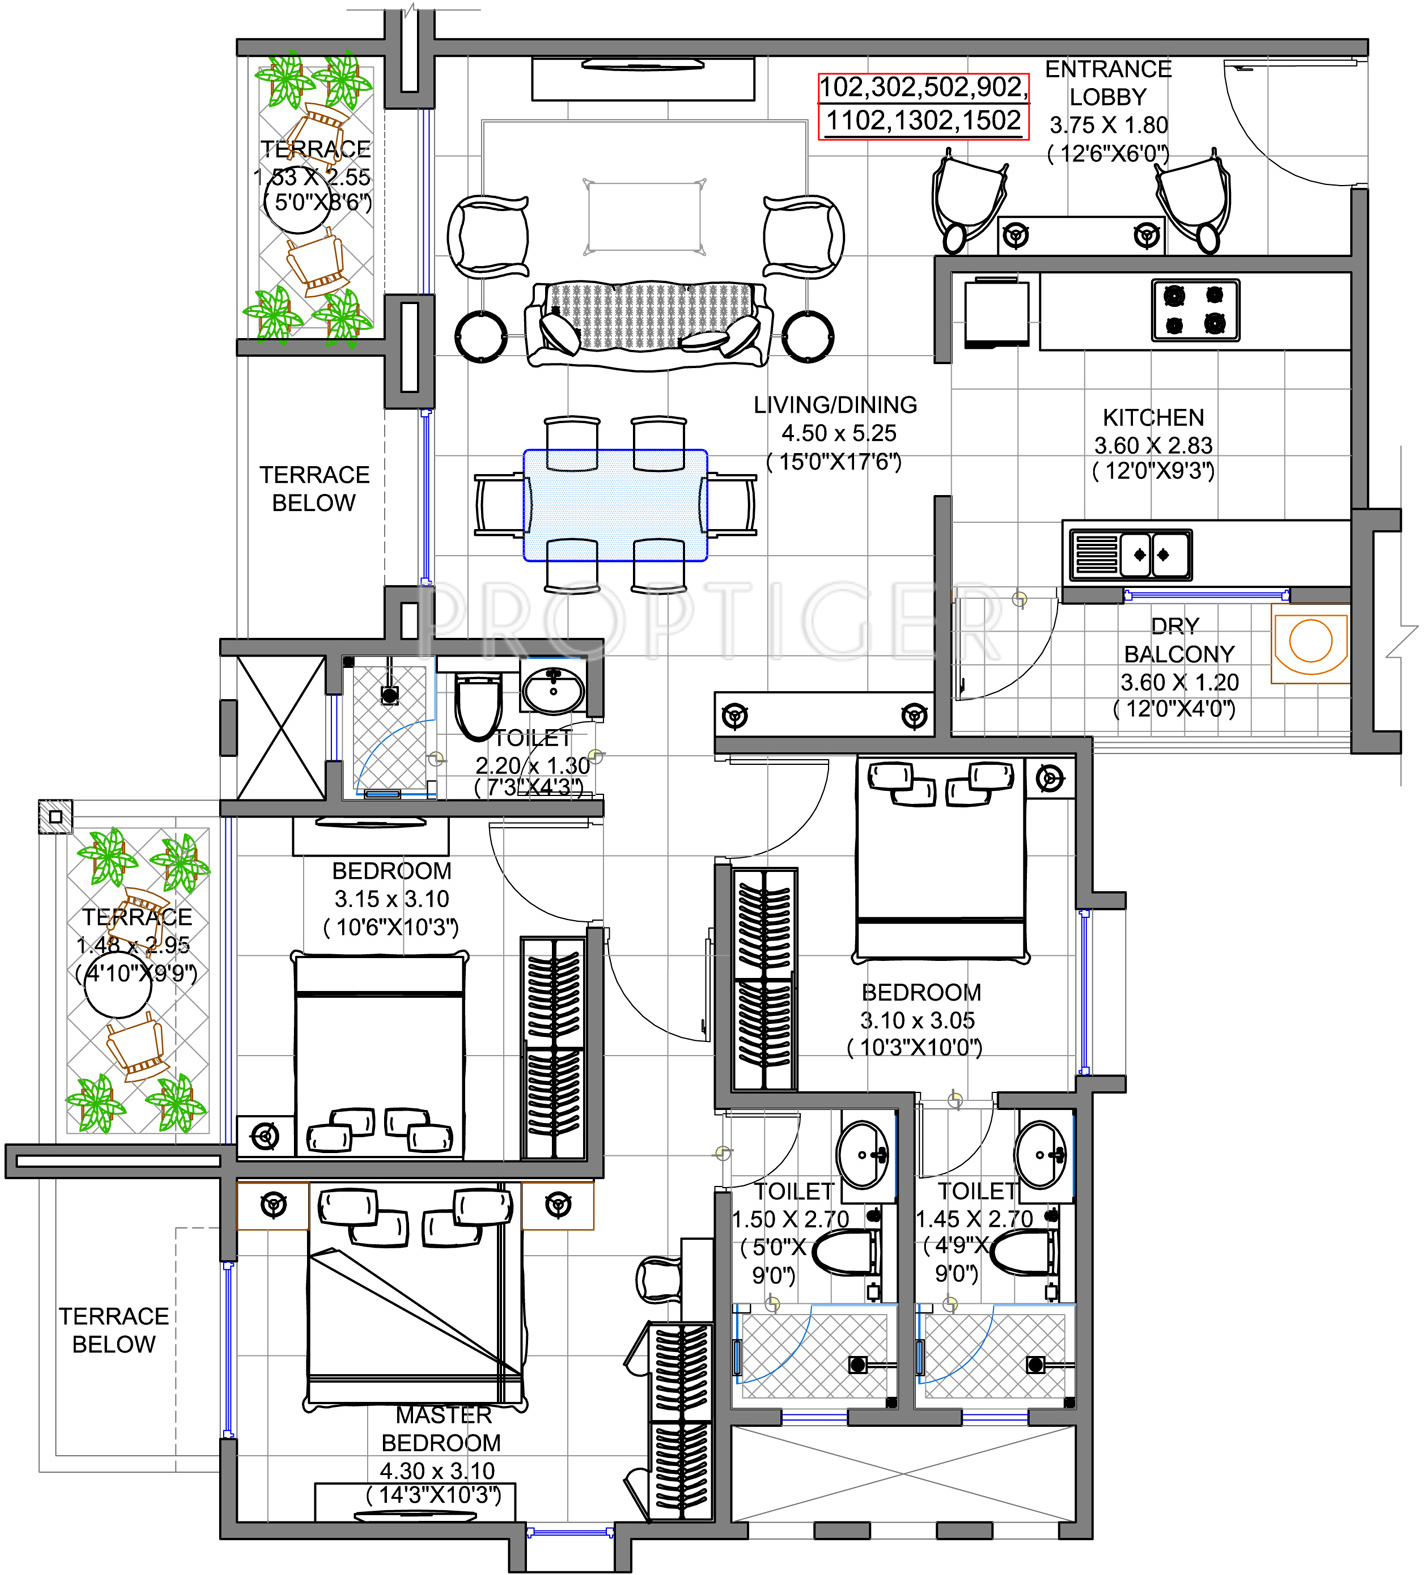 8000 square foot house plans pin 8000 square foot house for Floor plans 8000 sq ft